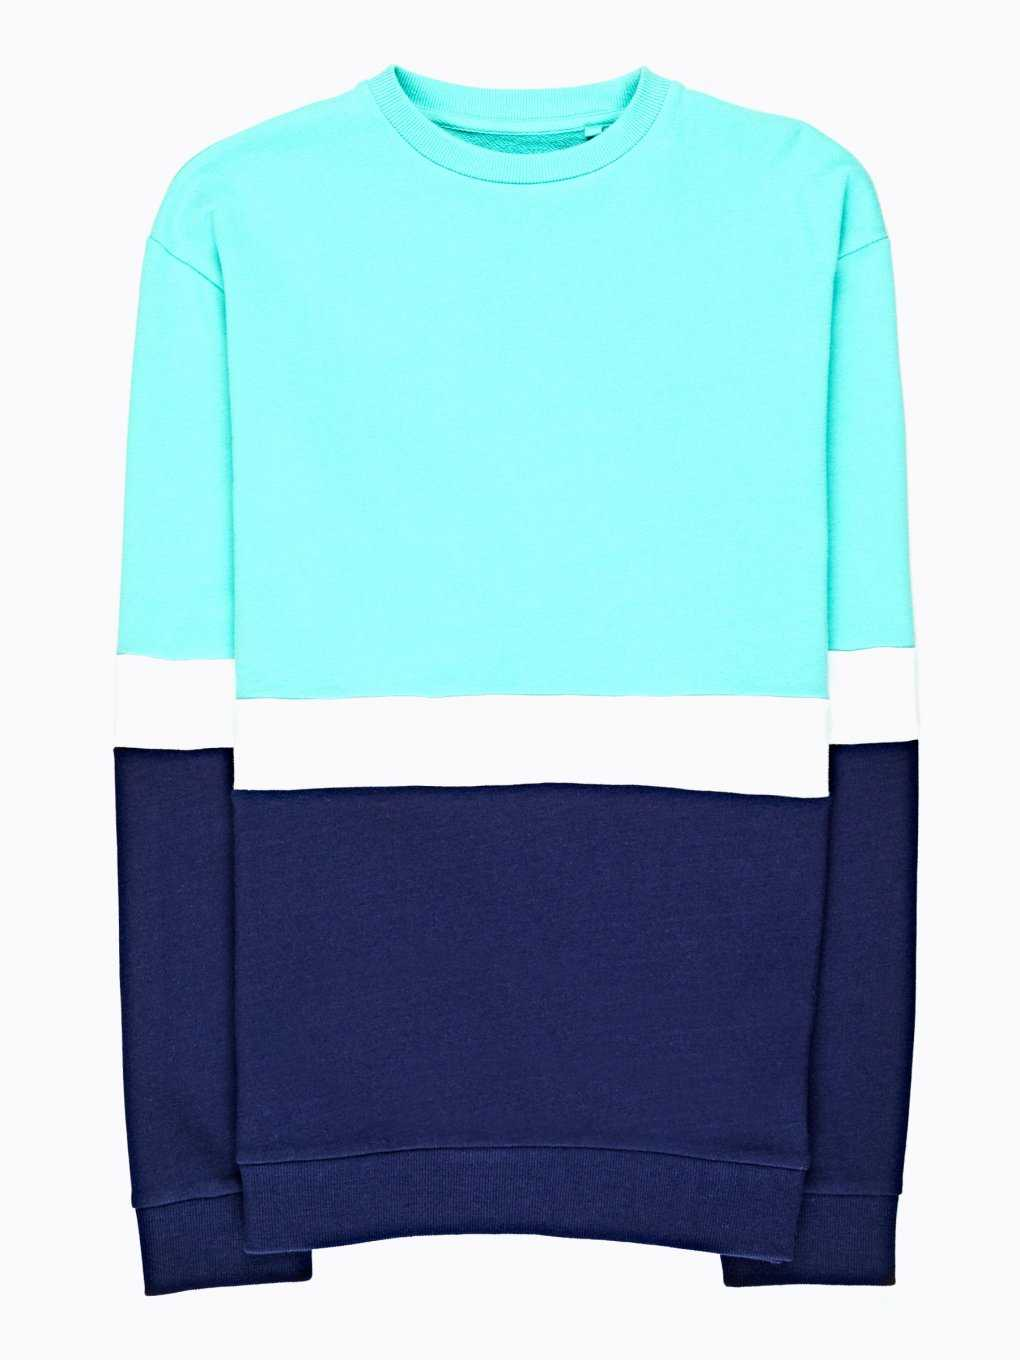 Paneled sweatshirt